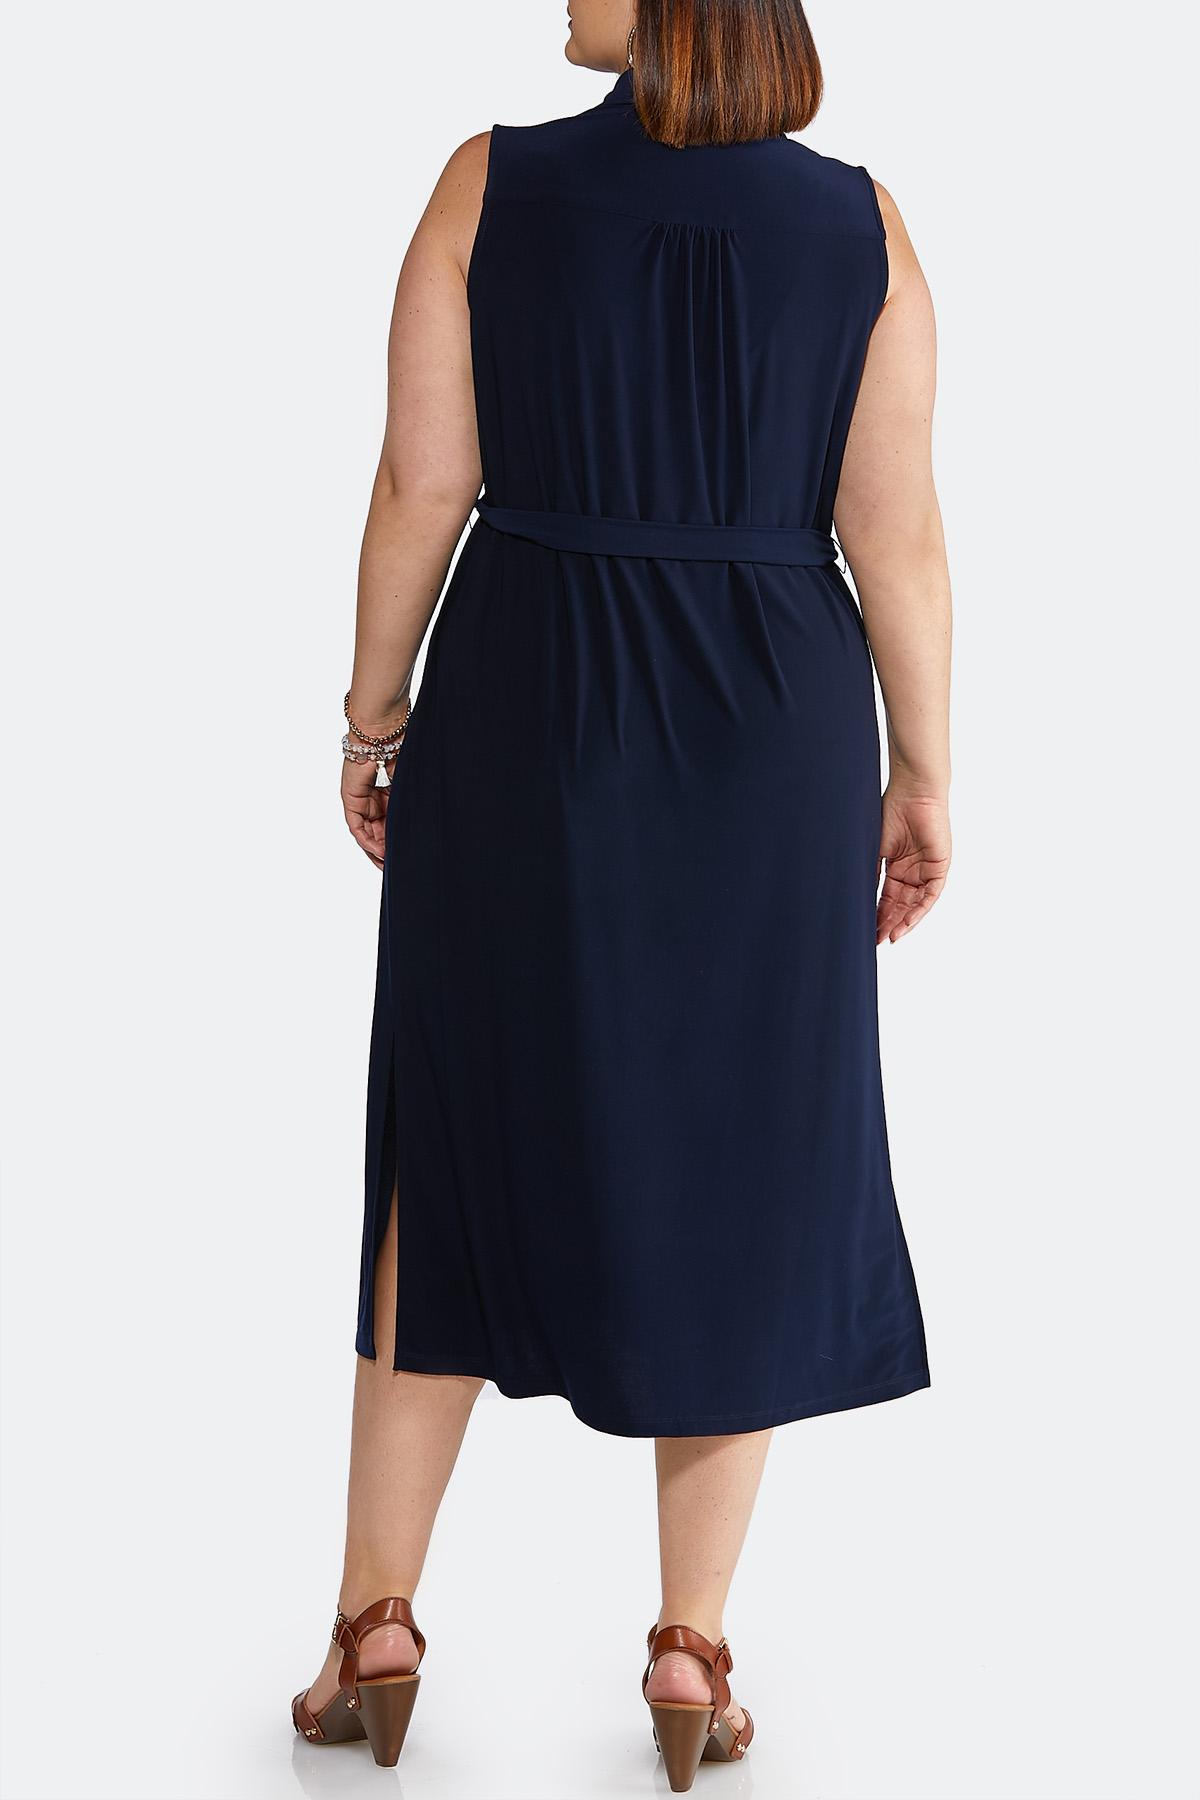 15c973e93bc3c Plus Size Navy Tie Waist Midi Dress Plus Sizes Cato Fashions